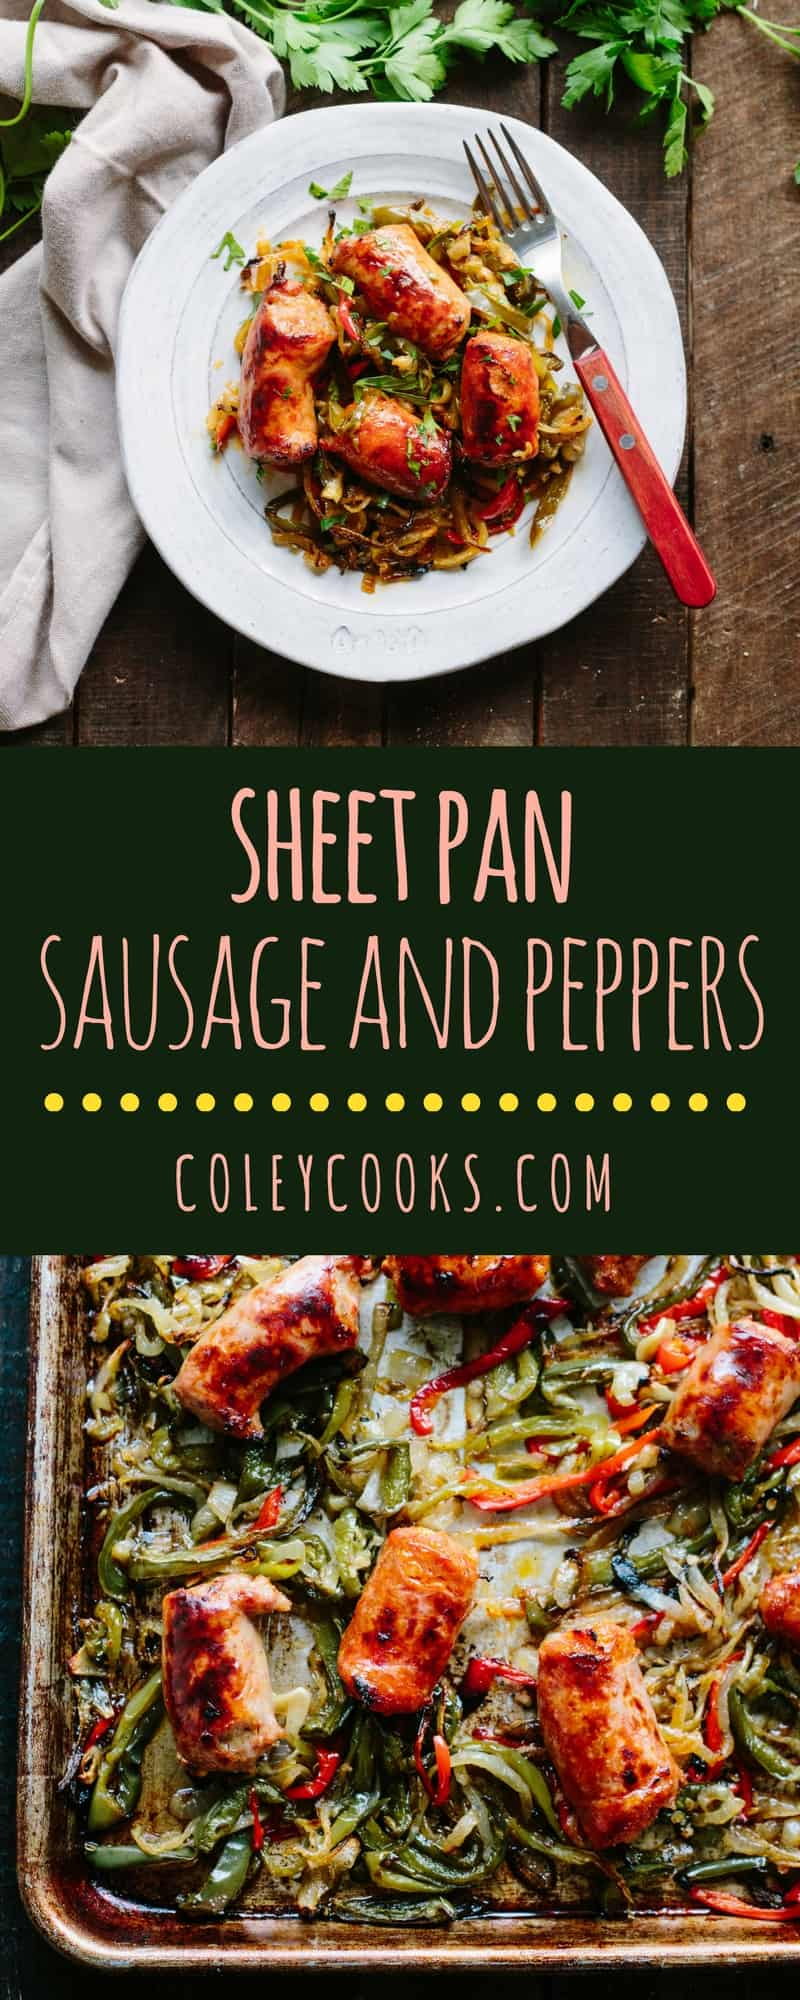 Sheet Pan Sausage and Peppers | ColeyCooks.com